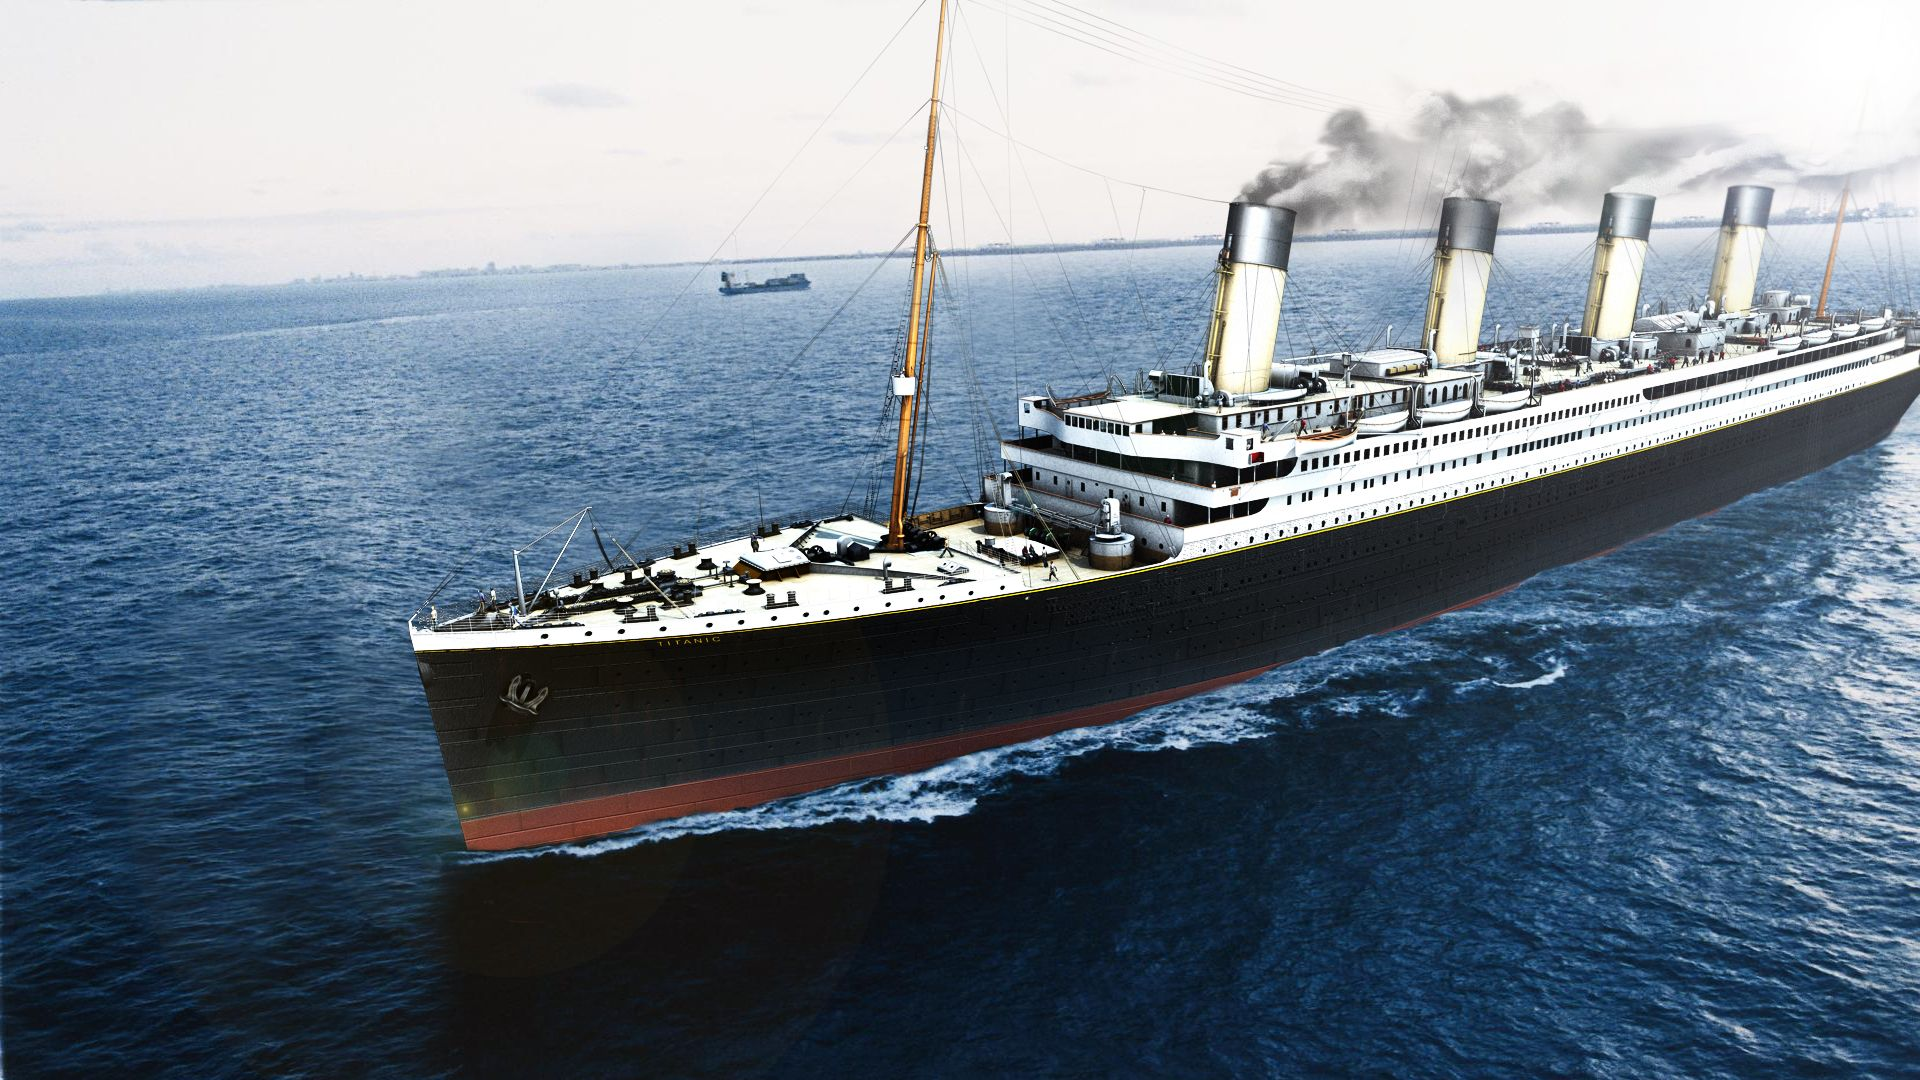 titanic hd wallpapers backgrounds wallpaper | hd wallpapers